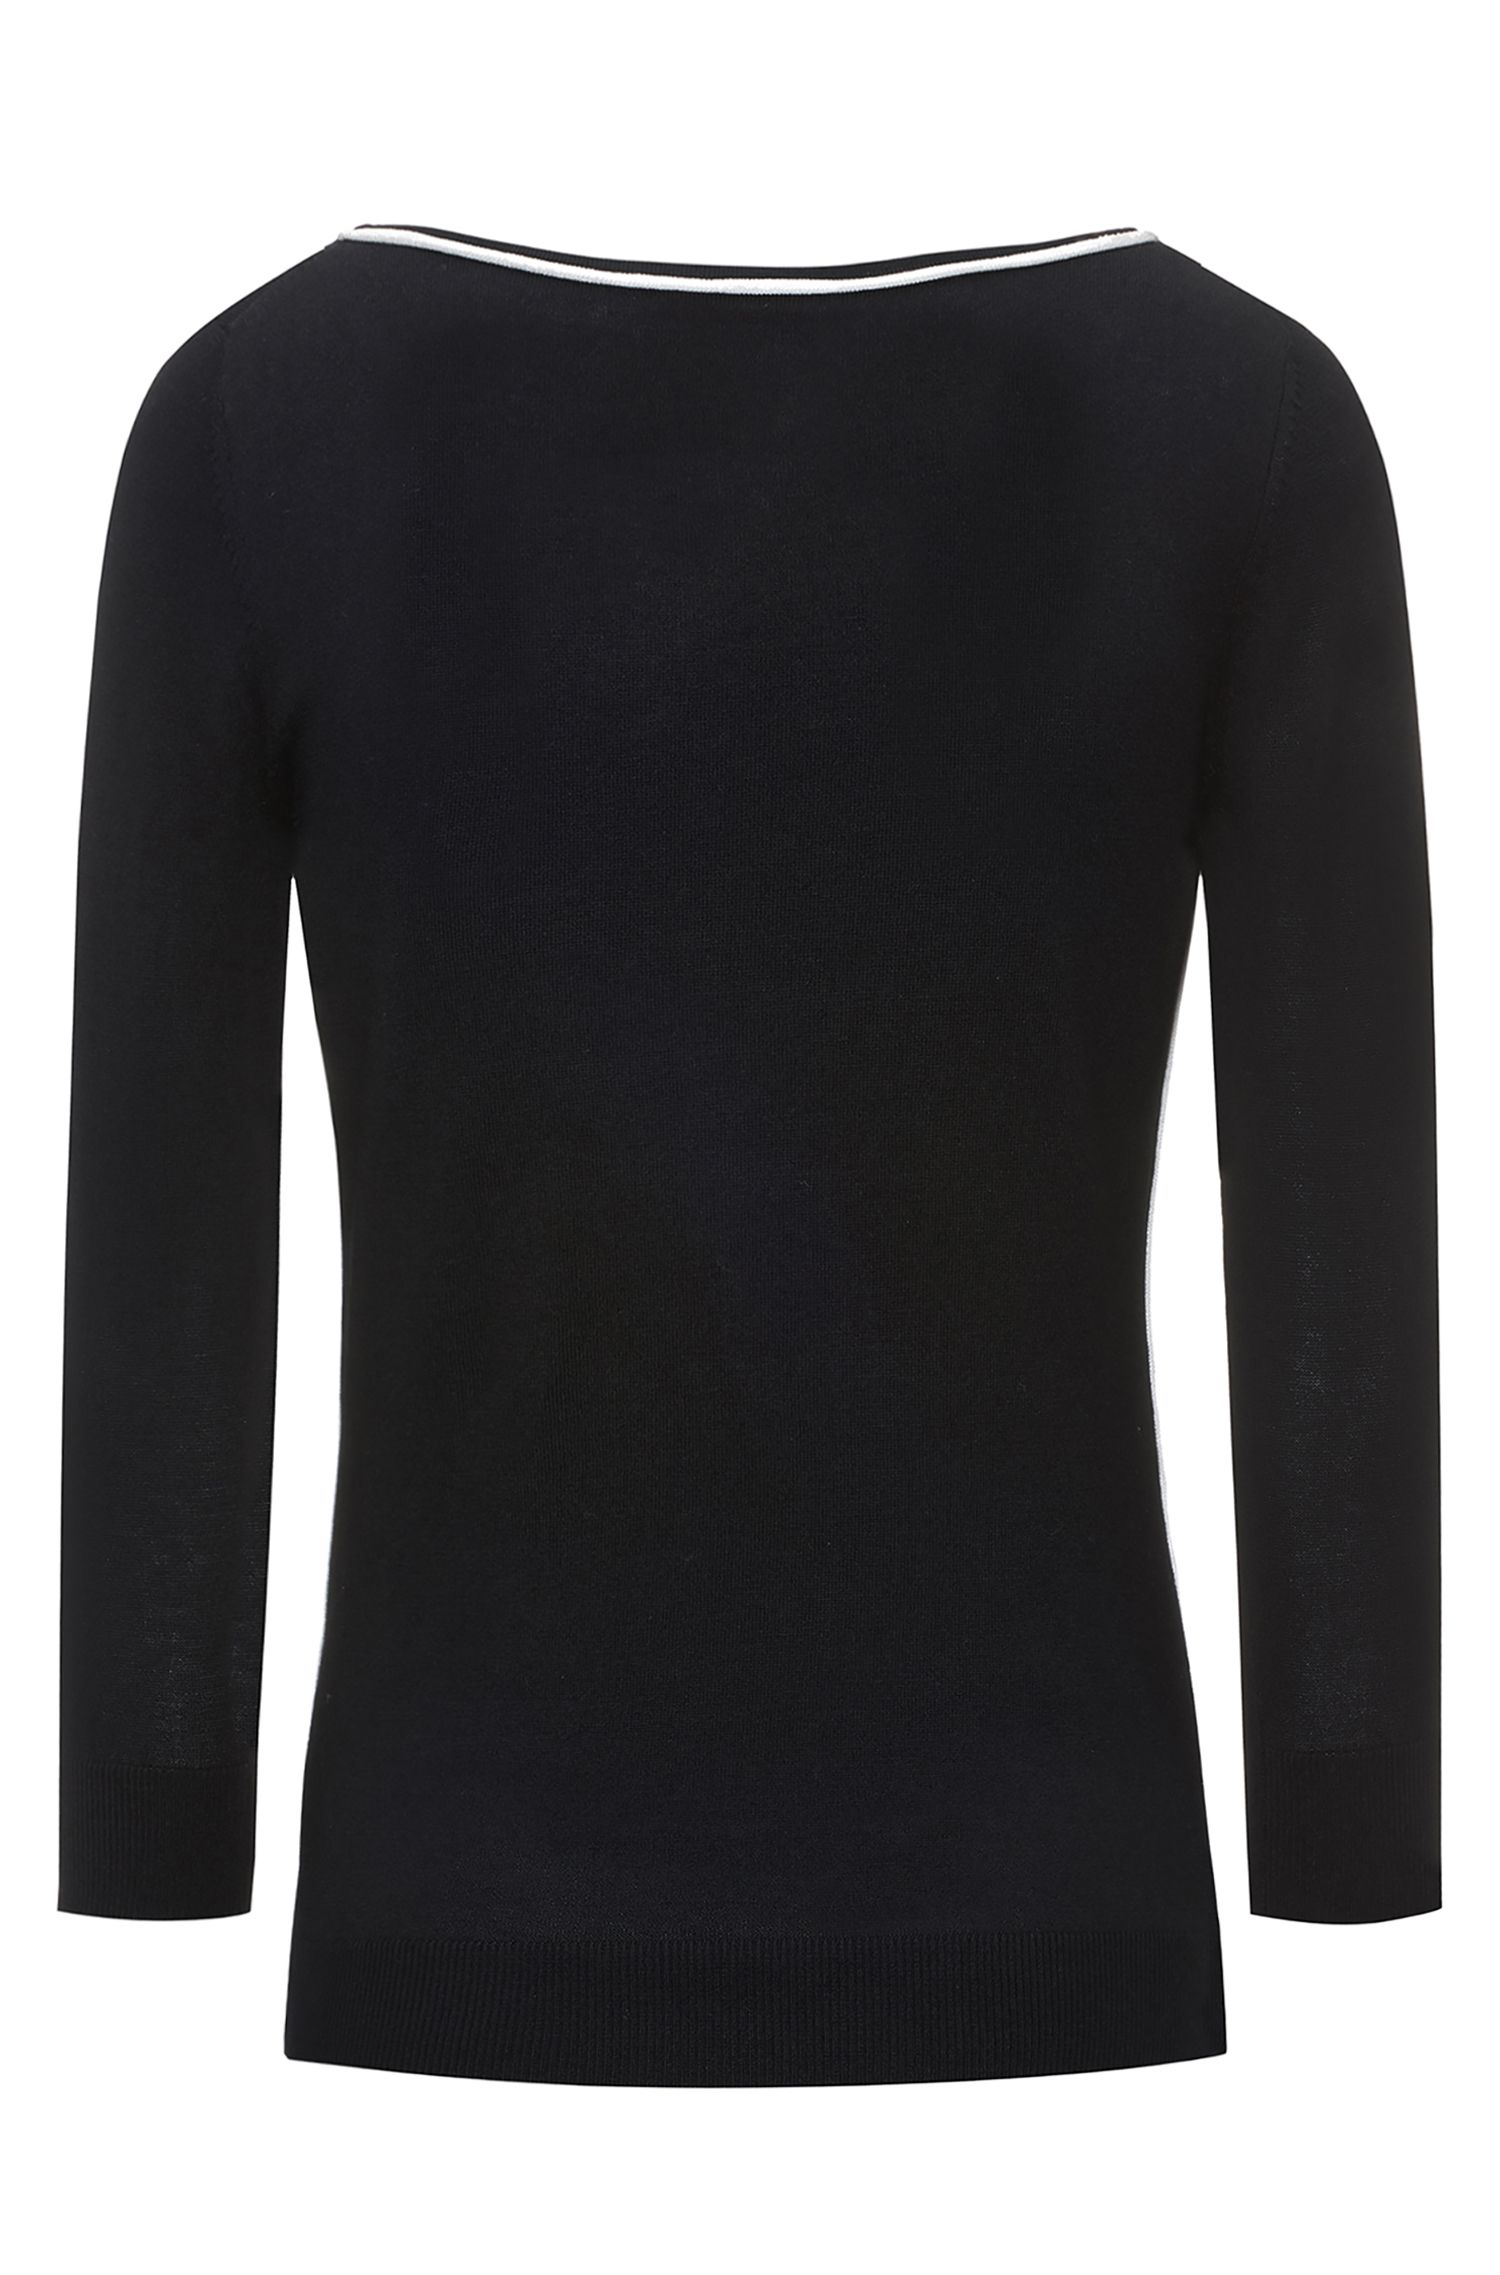 Boat-neck silk-blend sweater with contrast piping